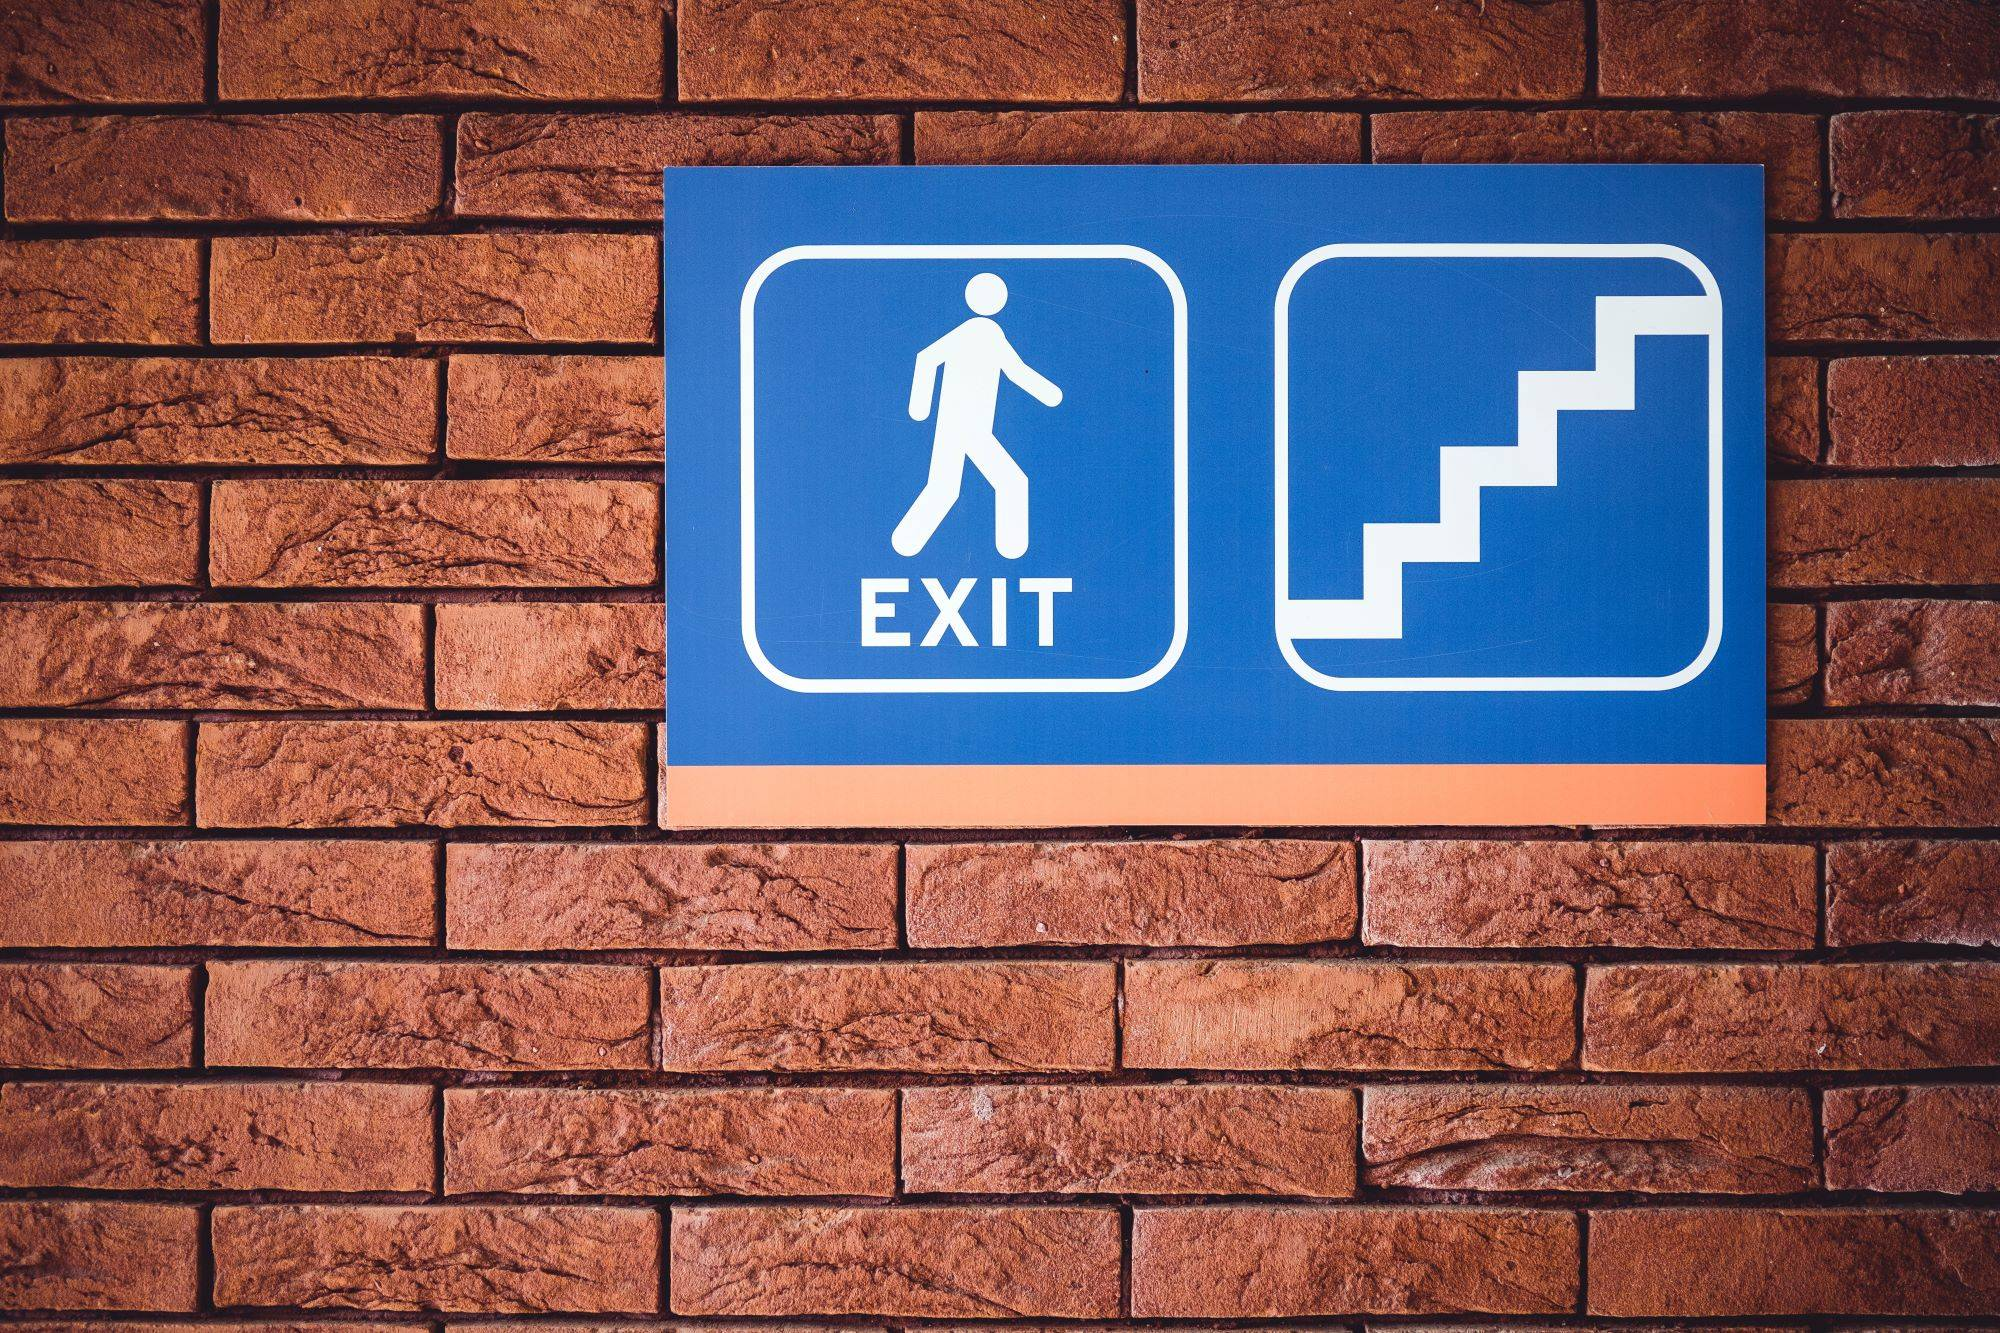 exit by design